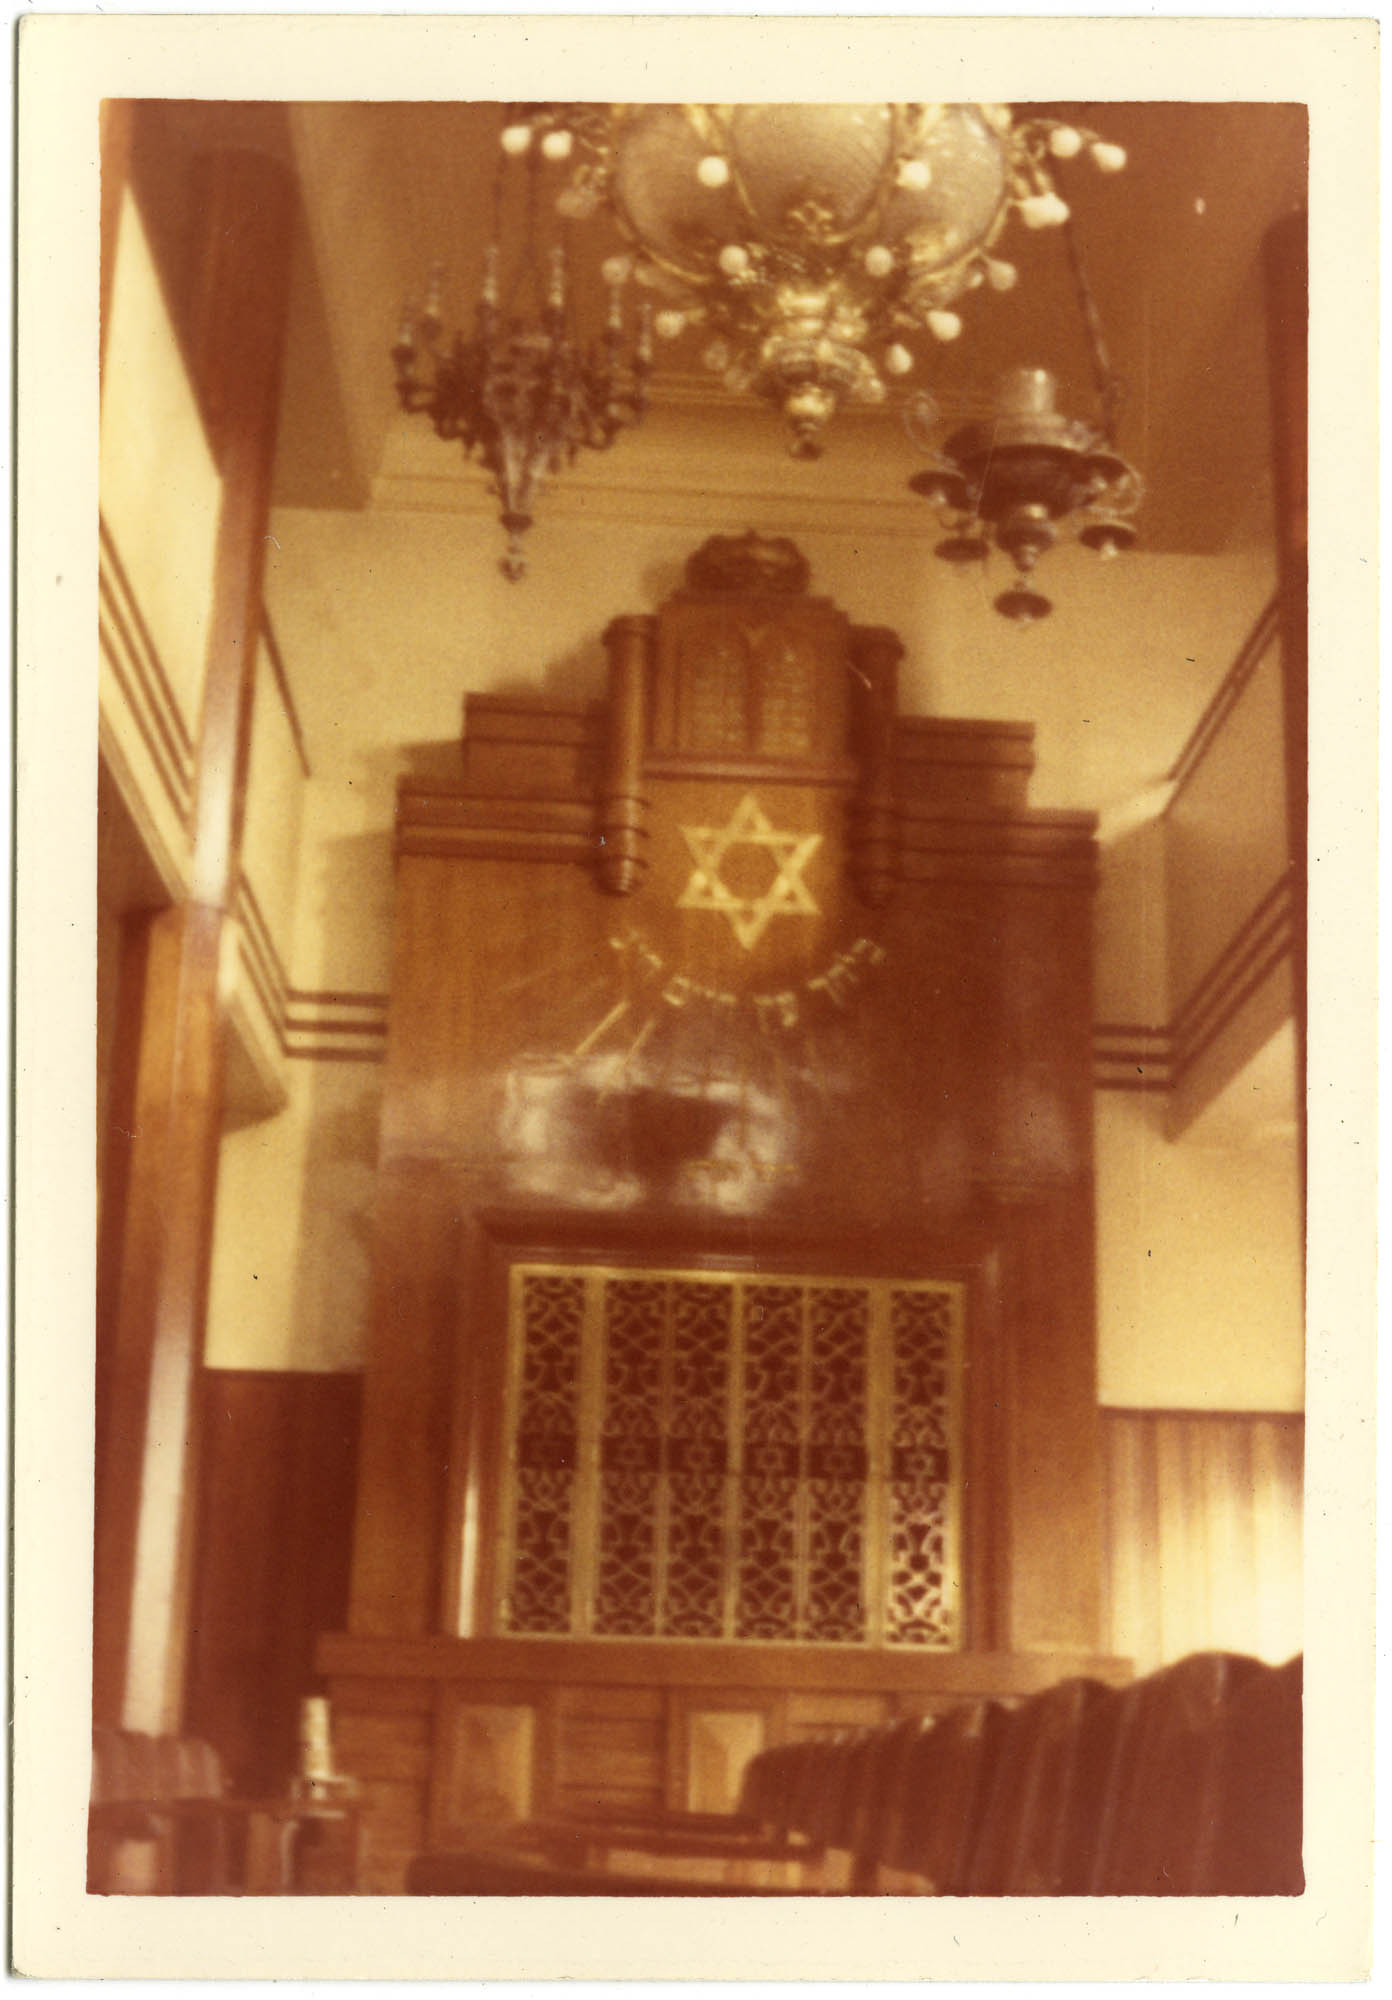 [Ark of Synagogue in Tangier, Morocco]